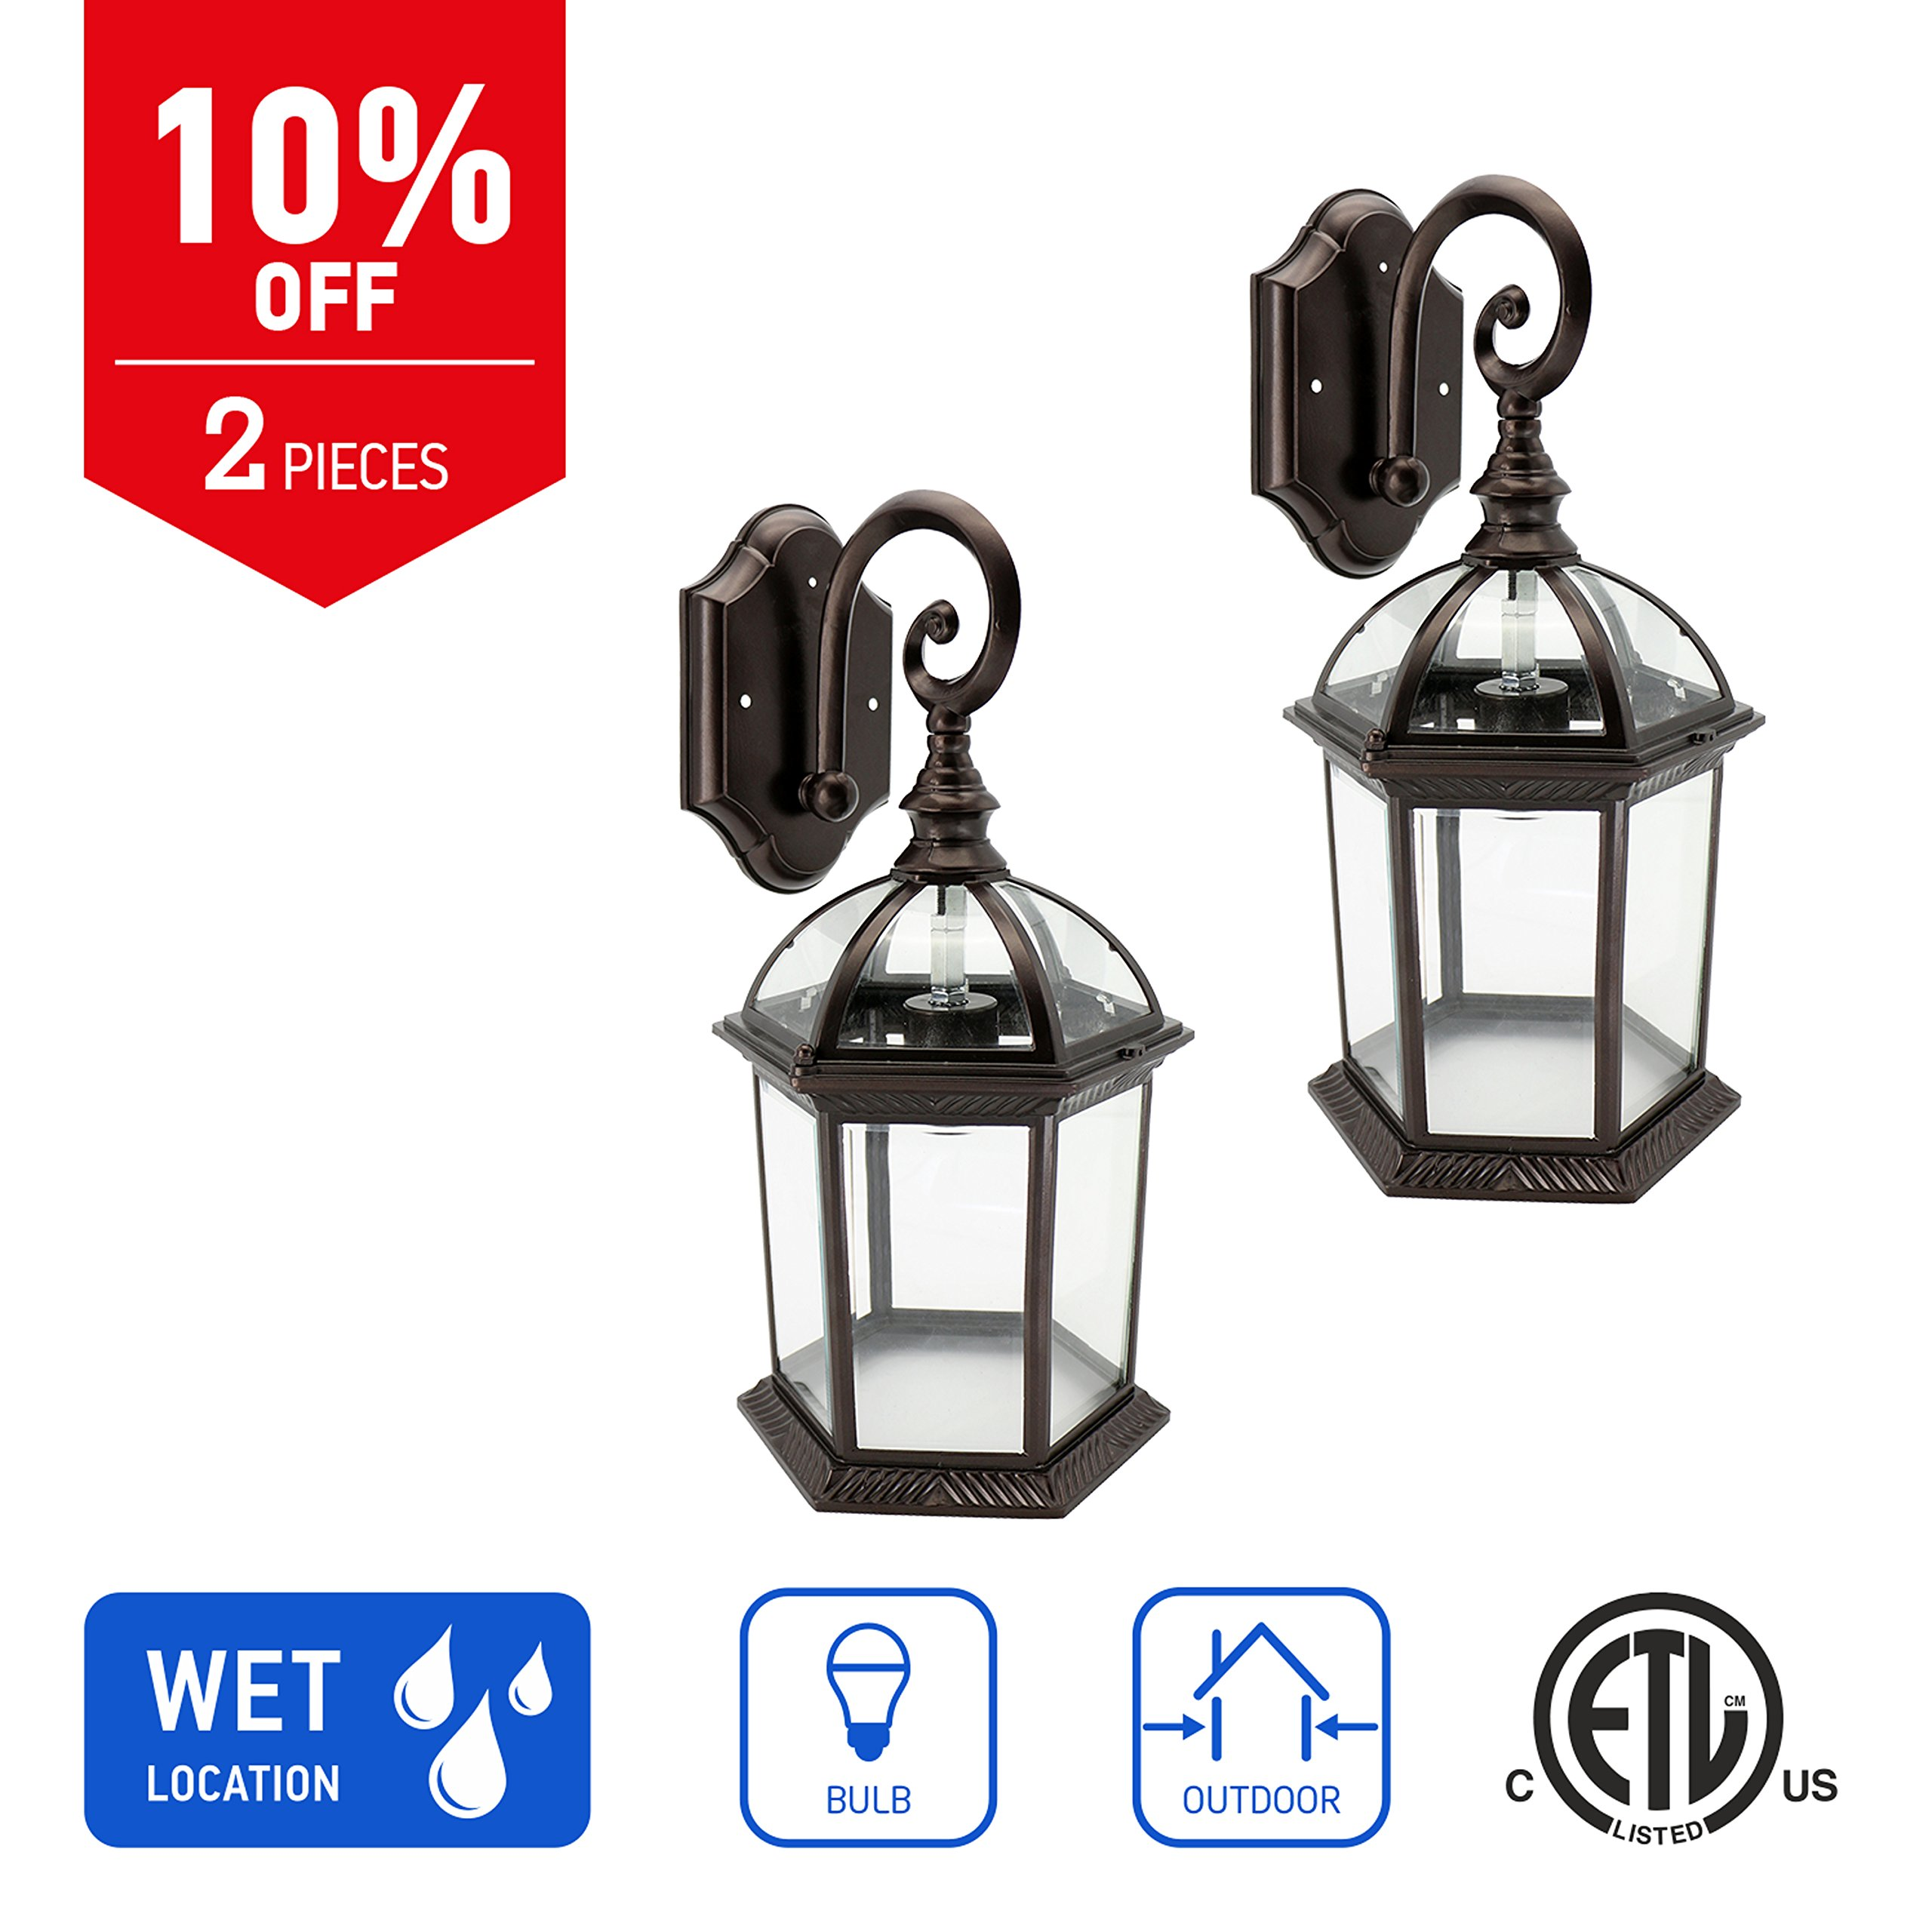 in Home 1-Light Outdoor Wall Mount Lantern Downward Fixture L07 Series Traditional Design Bronze Finish, Clear Glass Shade (2 Pack), ETL Listed